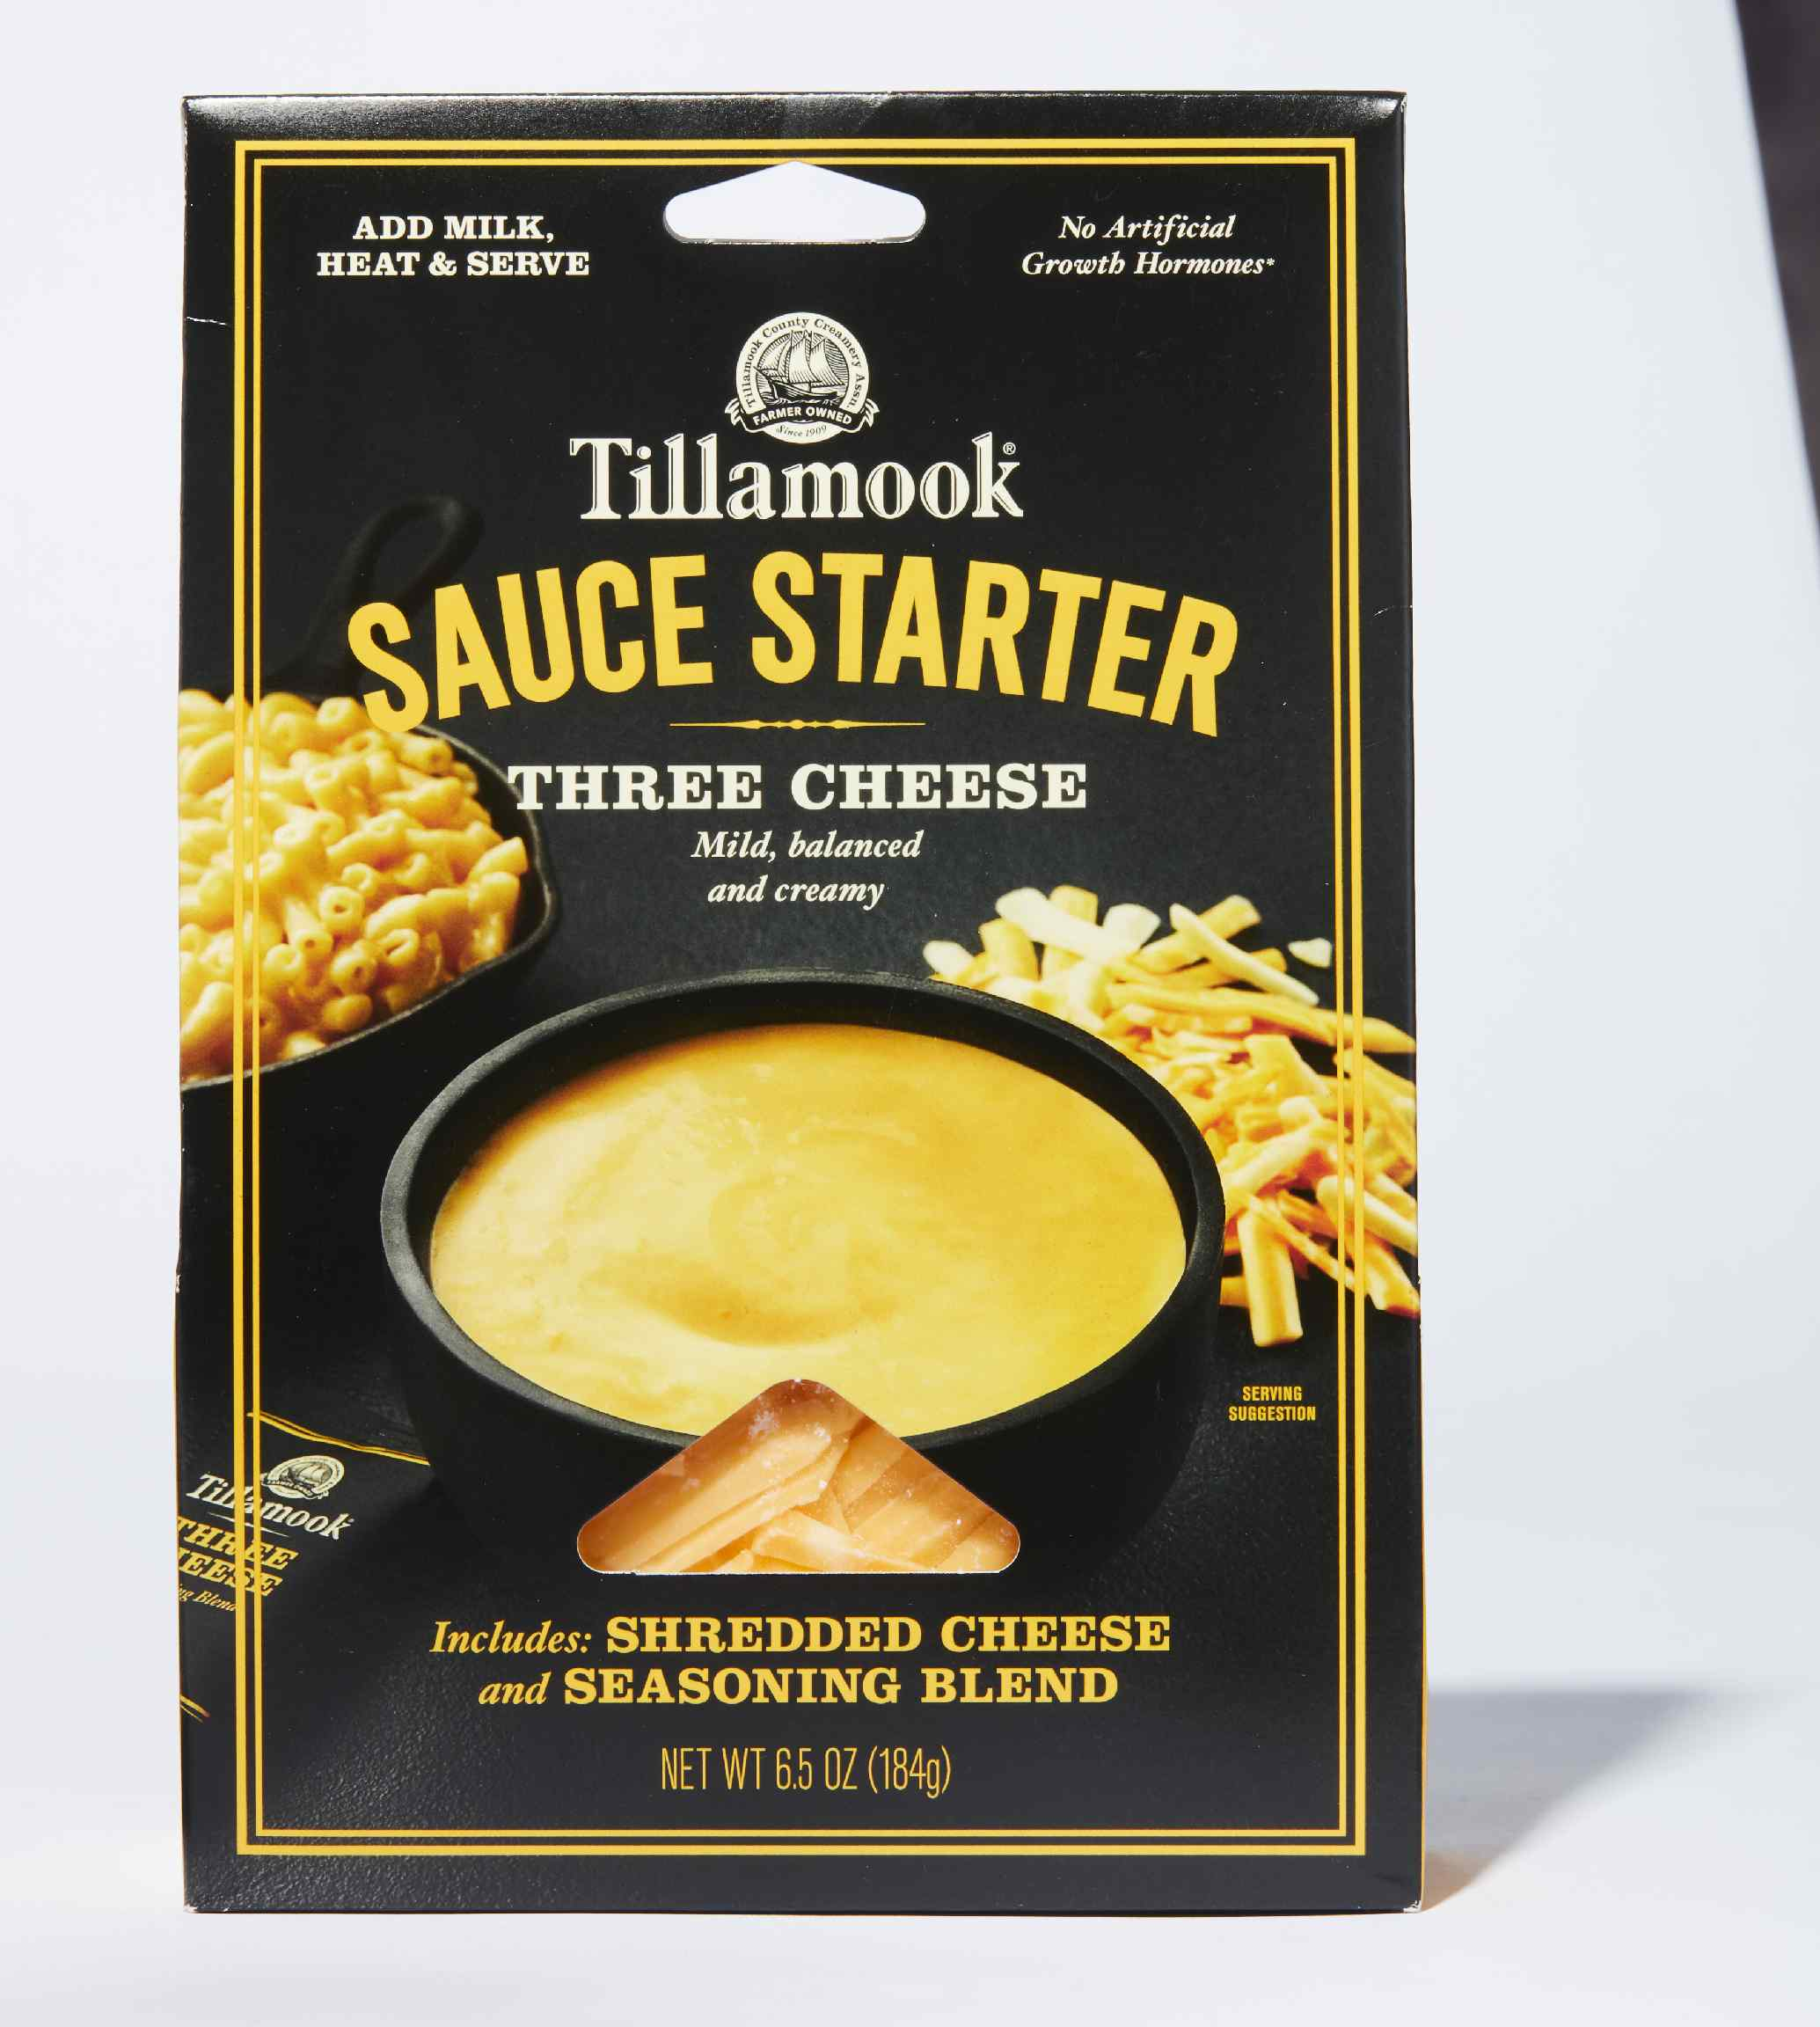 Tillamook Sauce Starter Three Cheese